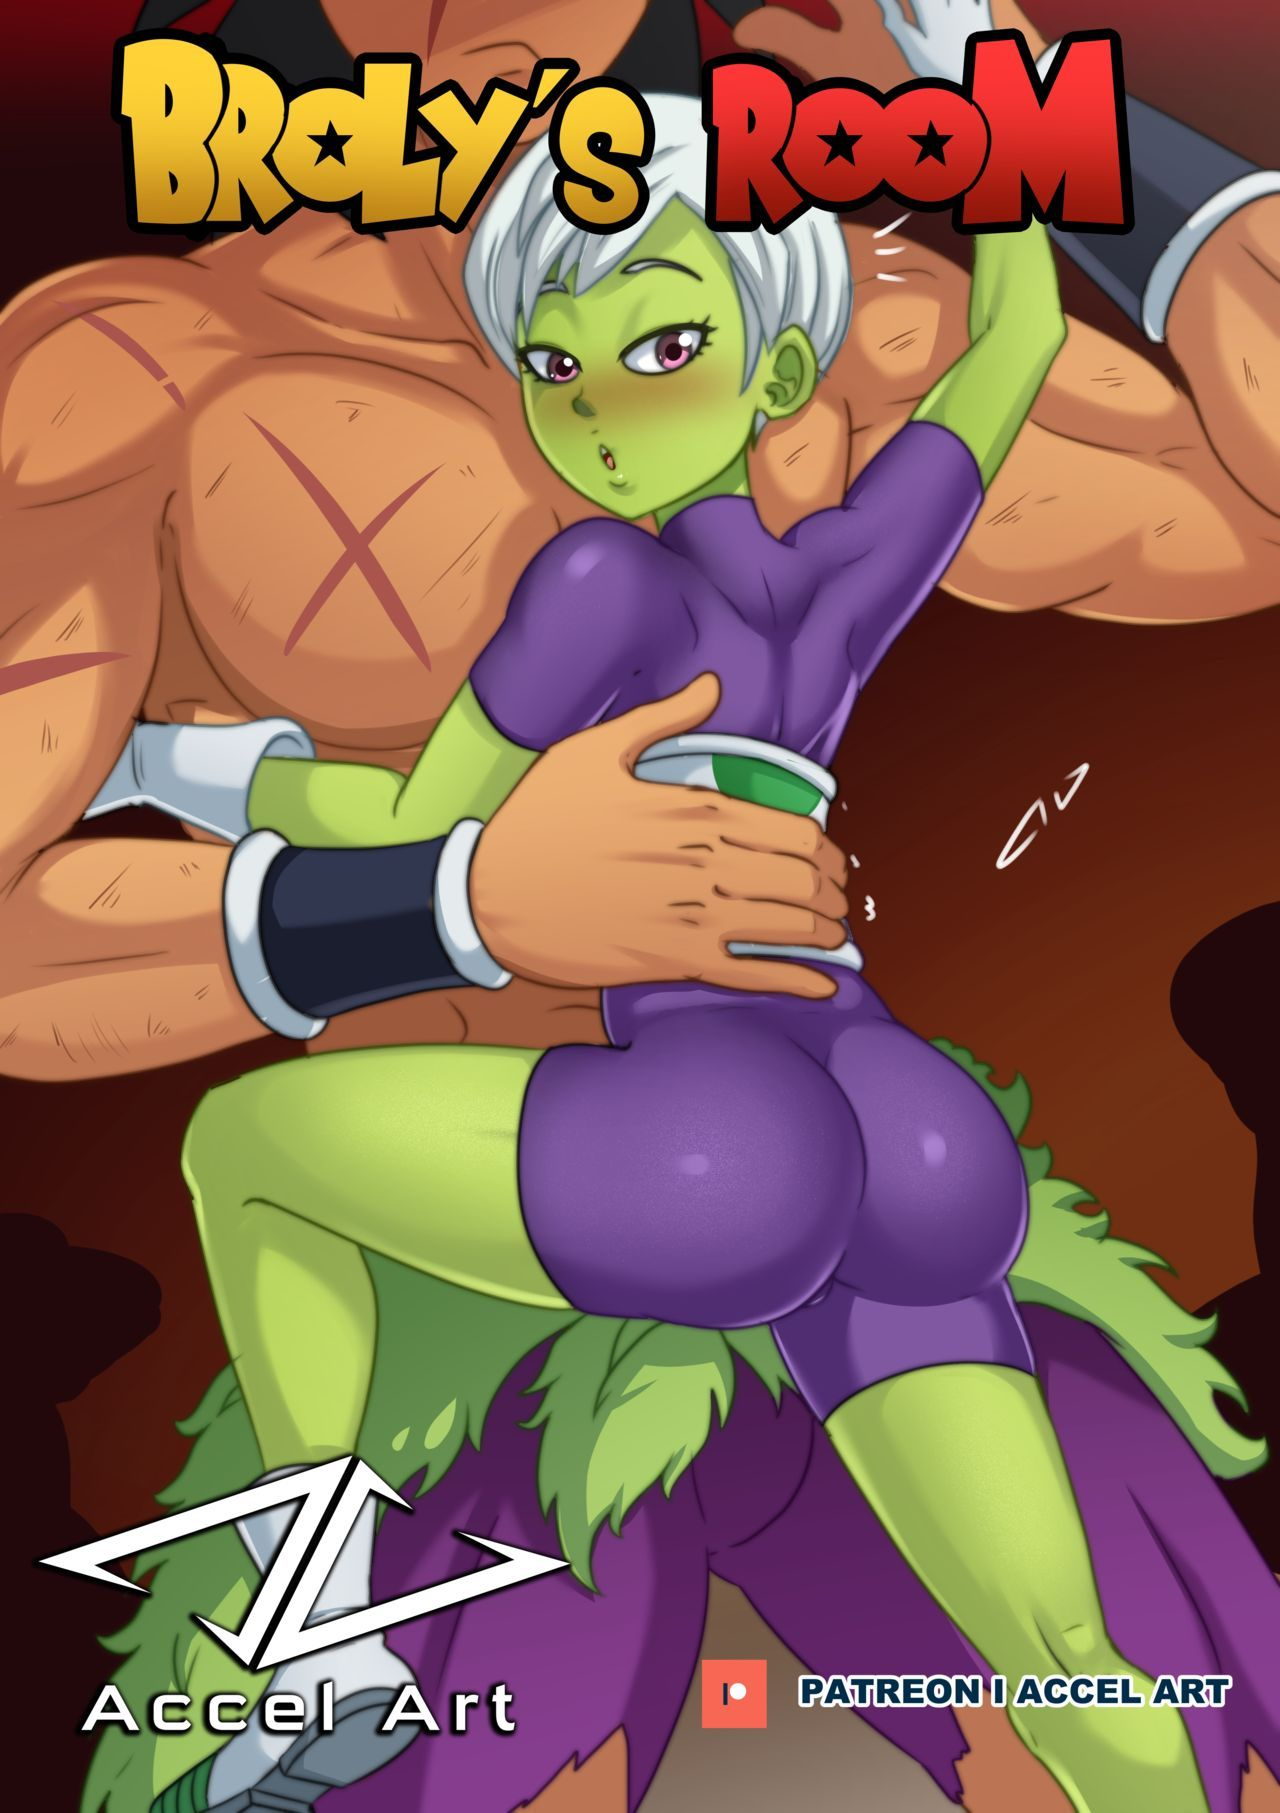 Brolys-Room-Accel-Art-01.jpg